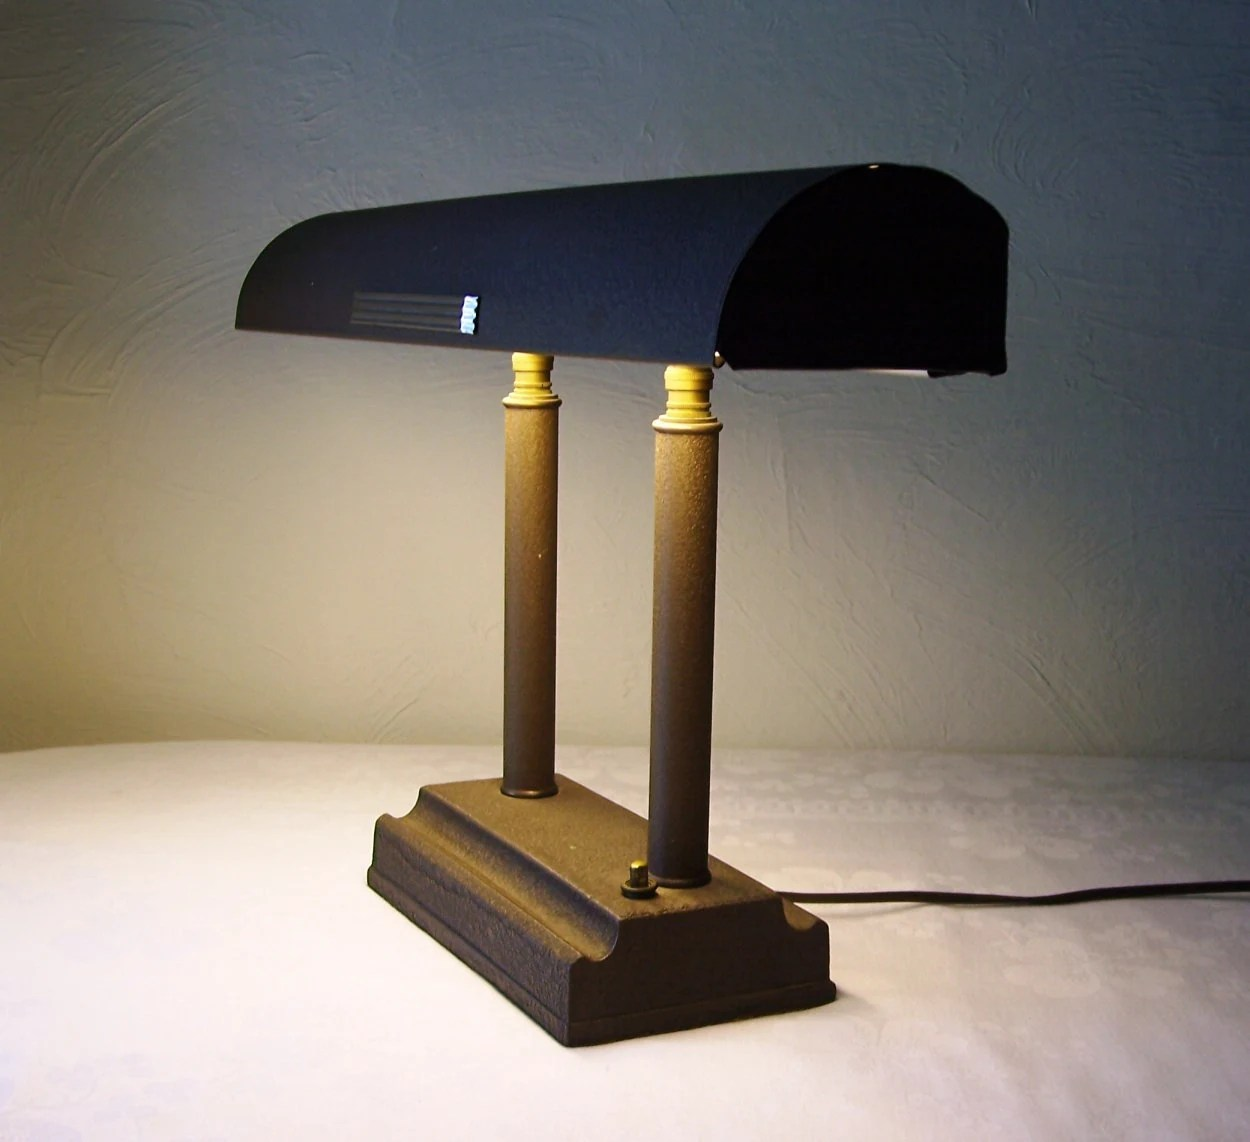 Artistic Desk Lamps Vintage Art Deco Desk Lamp Adjustable Light